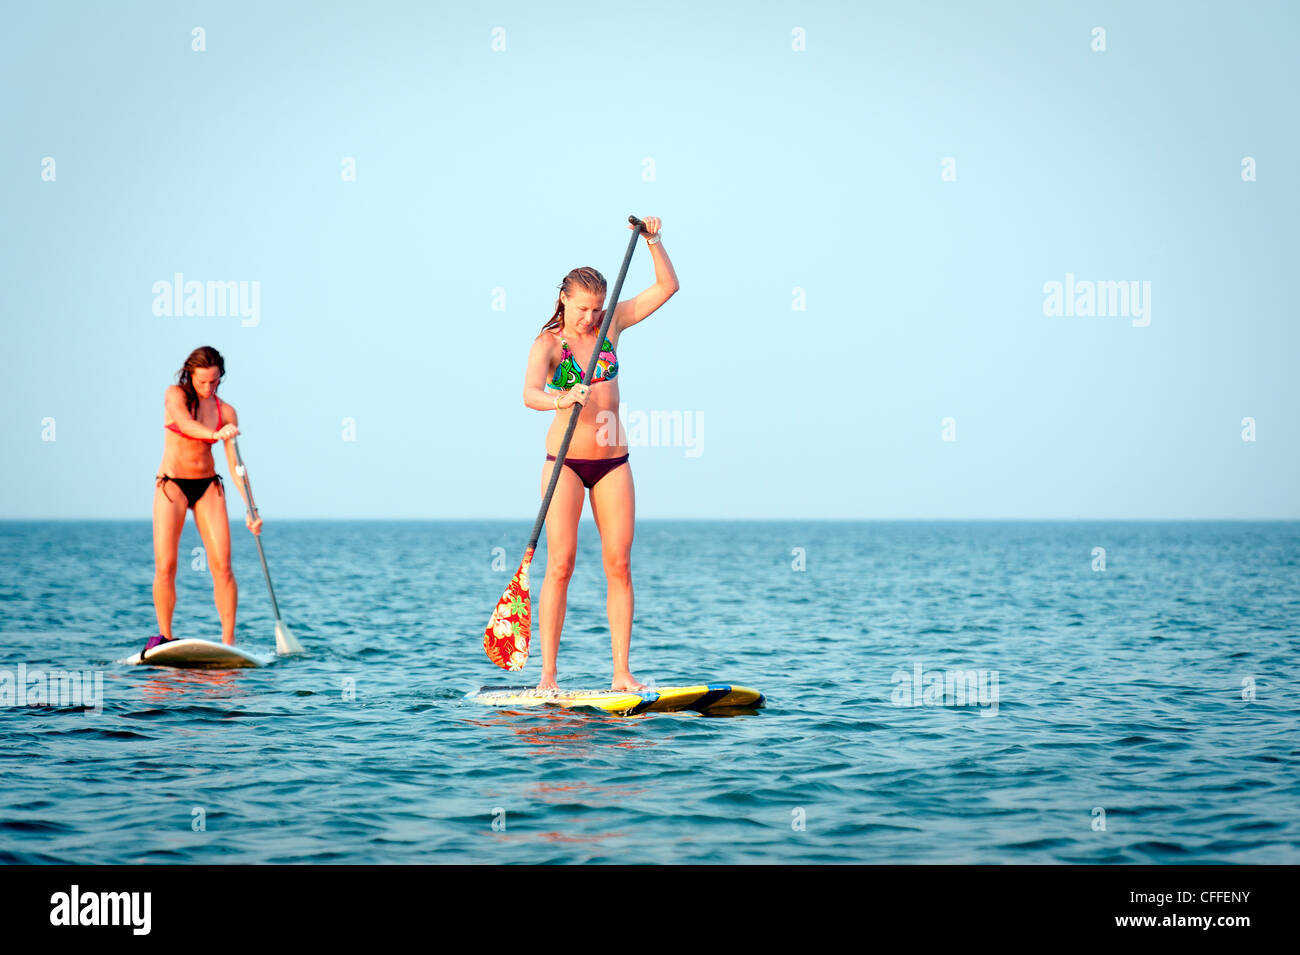 c9852f7bc63 Two women stand up paddle board by the coast Stock Photo: 43981447 ...